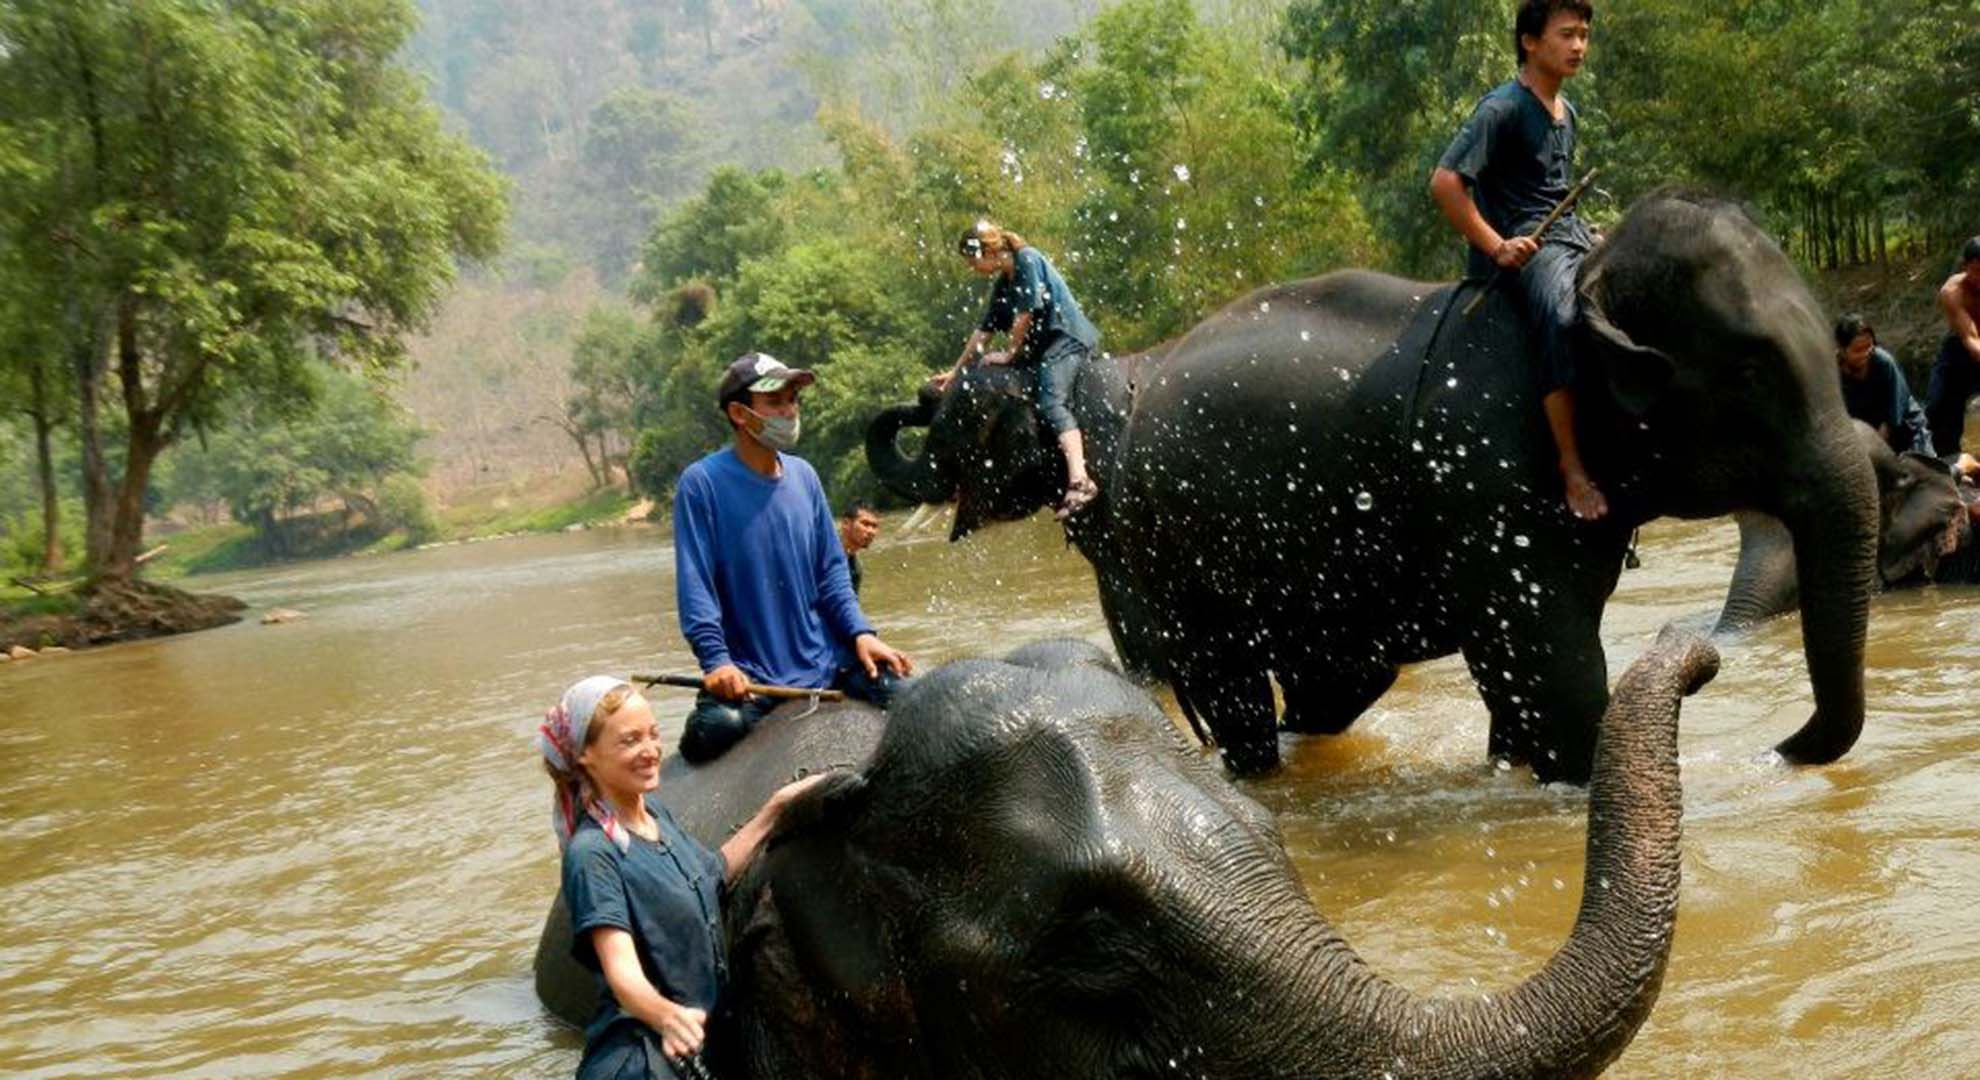 SoWas caring for elephants in Chaing Mai